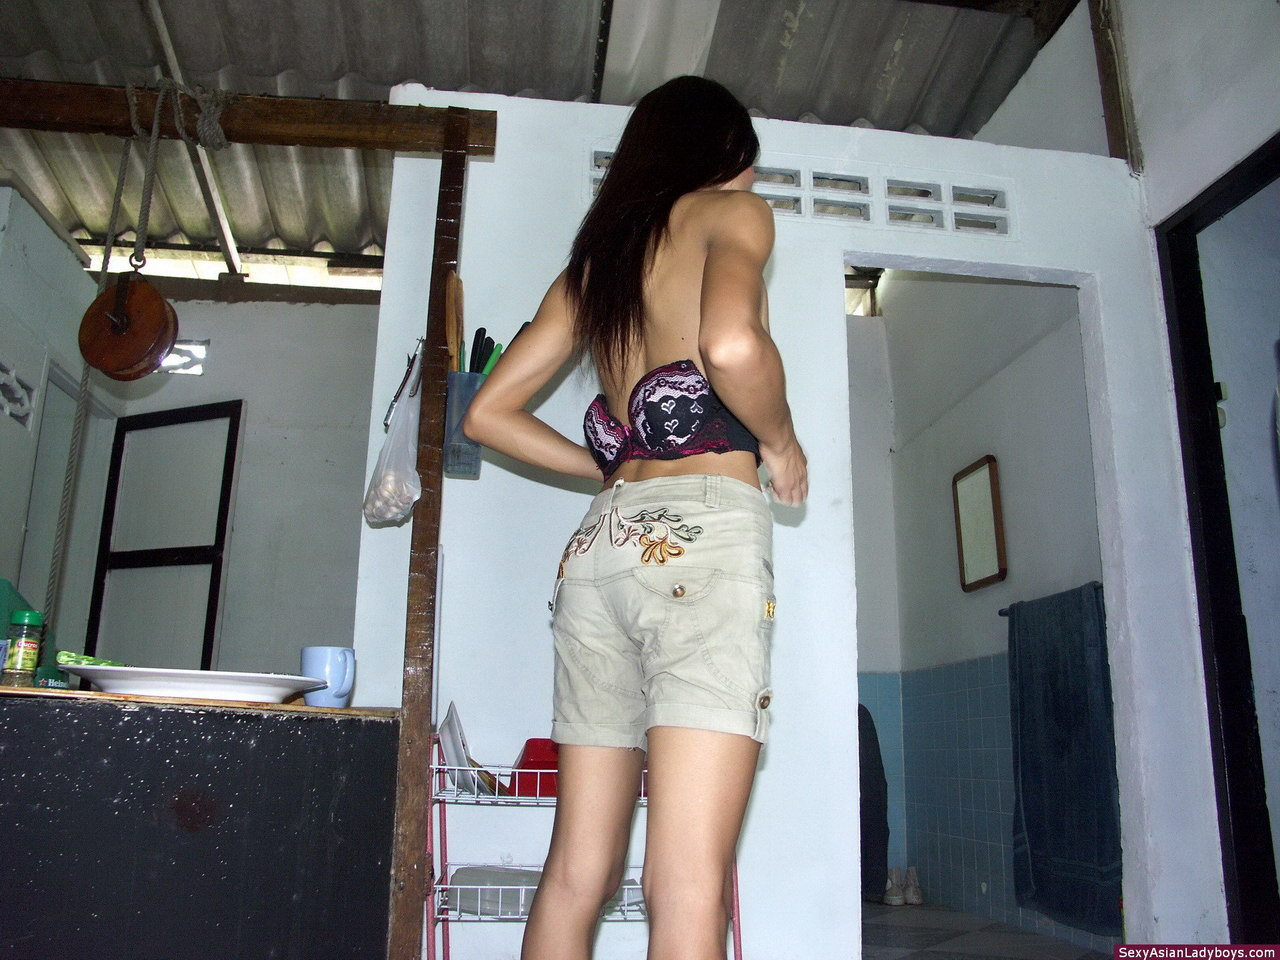 Needy Naked Thai Tgirl Photographed In The Slum Where She Lives